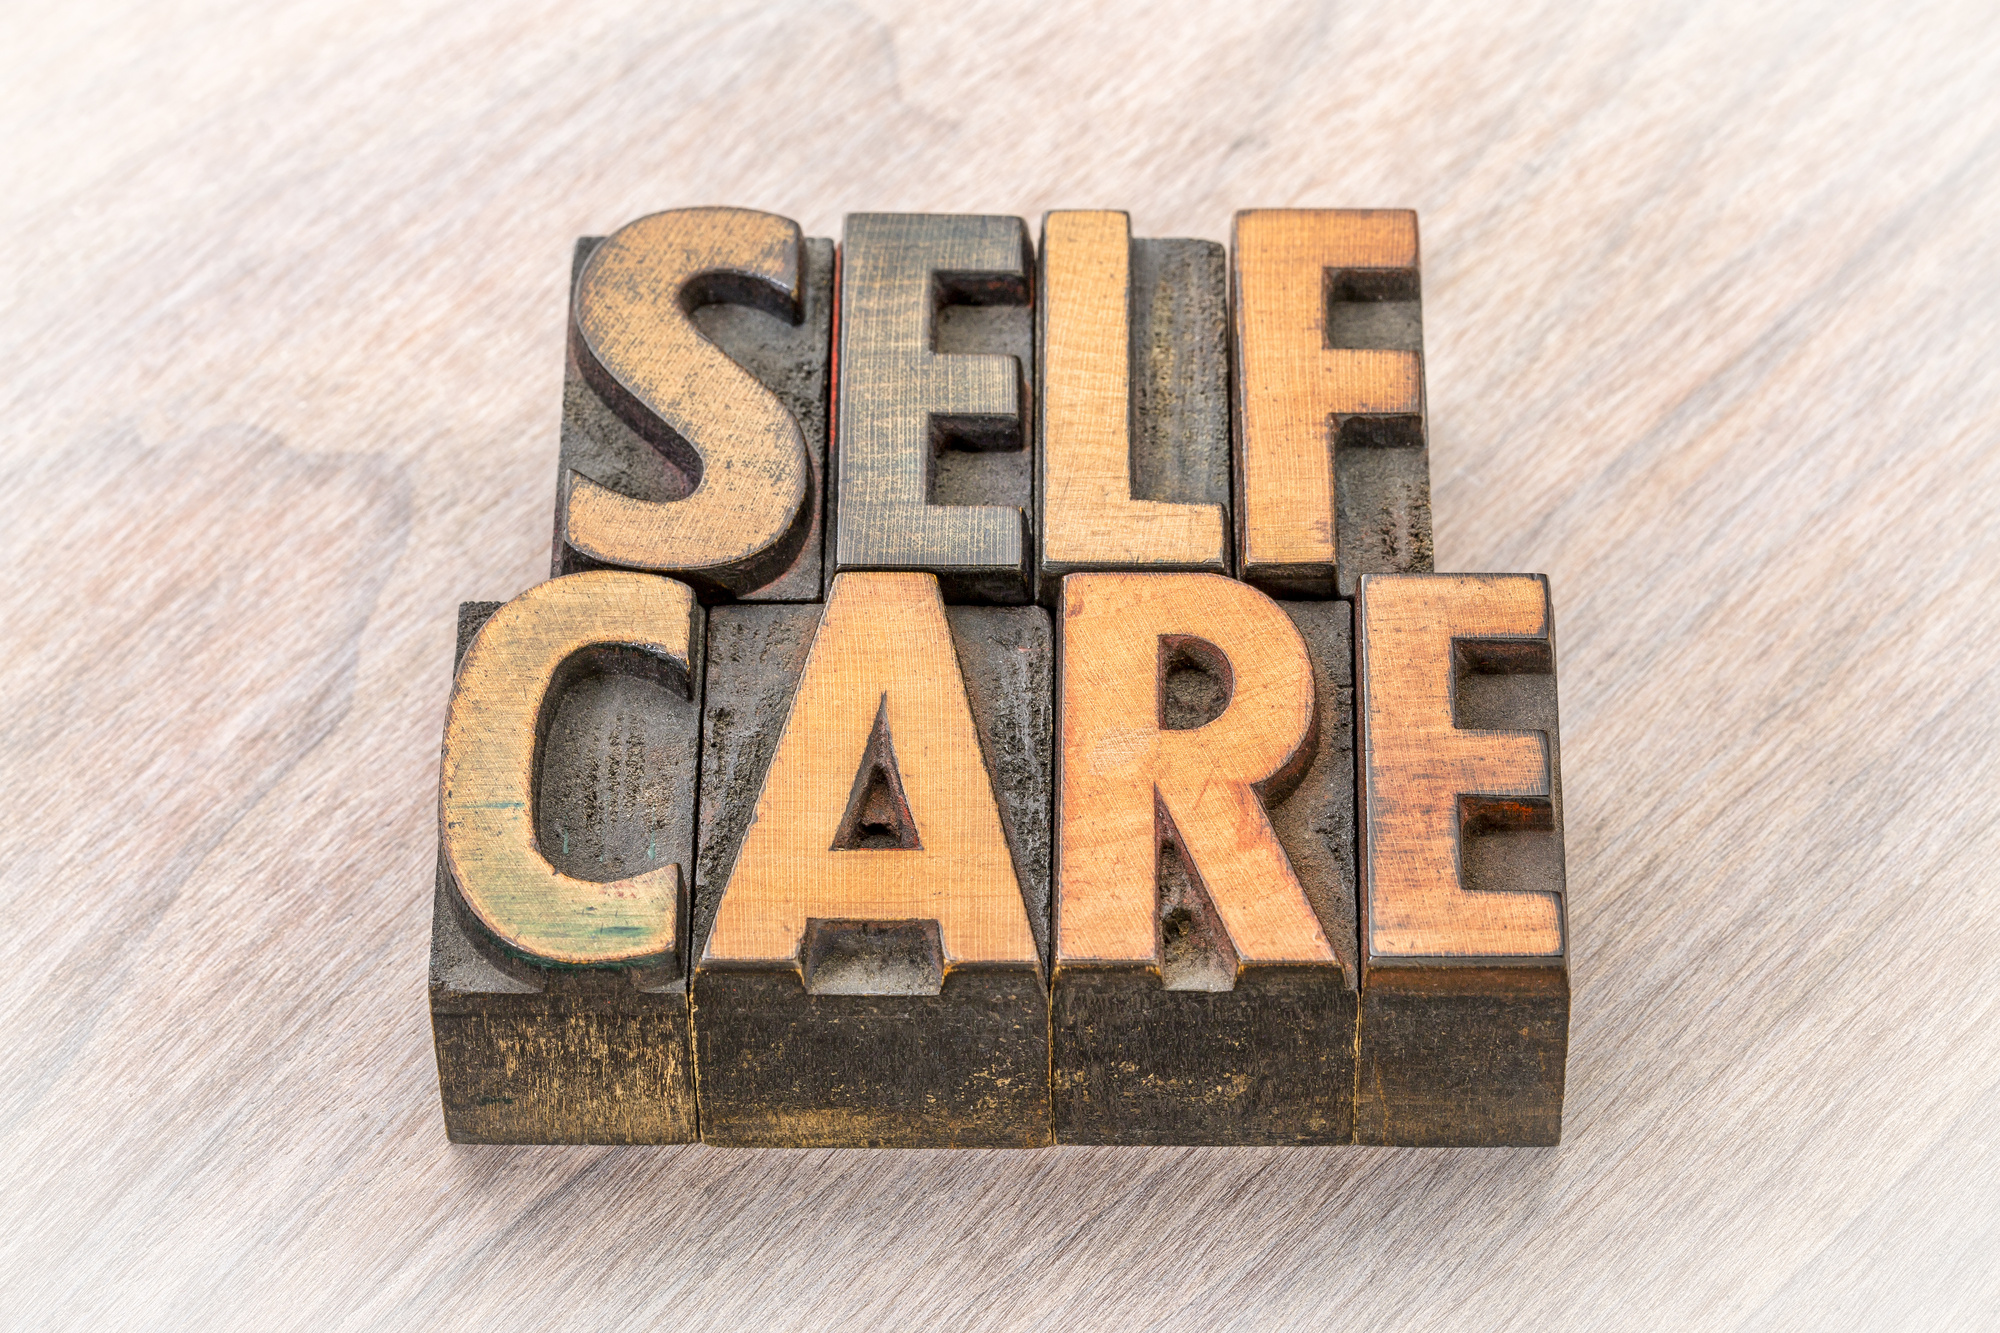 6 Easy Ways to Practice Self-Care on a Daily Basis